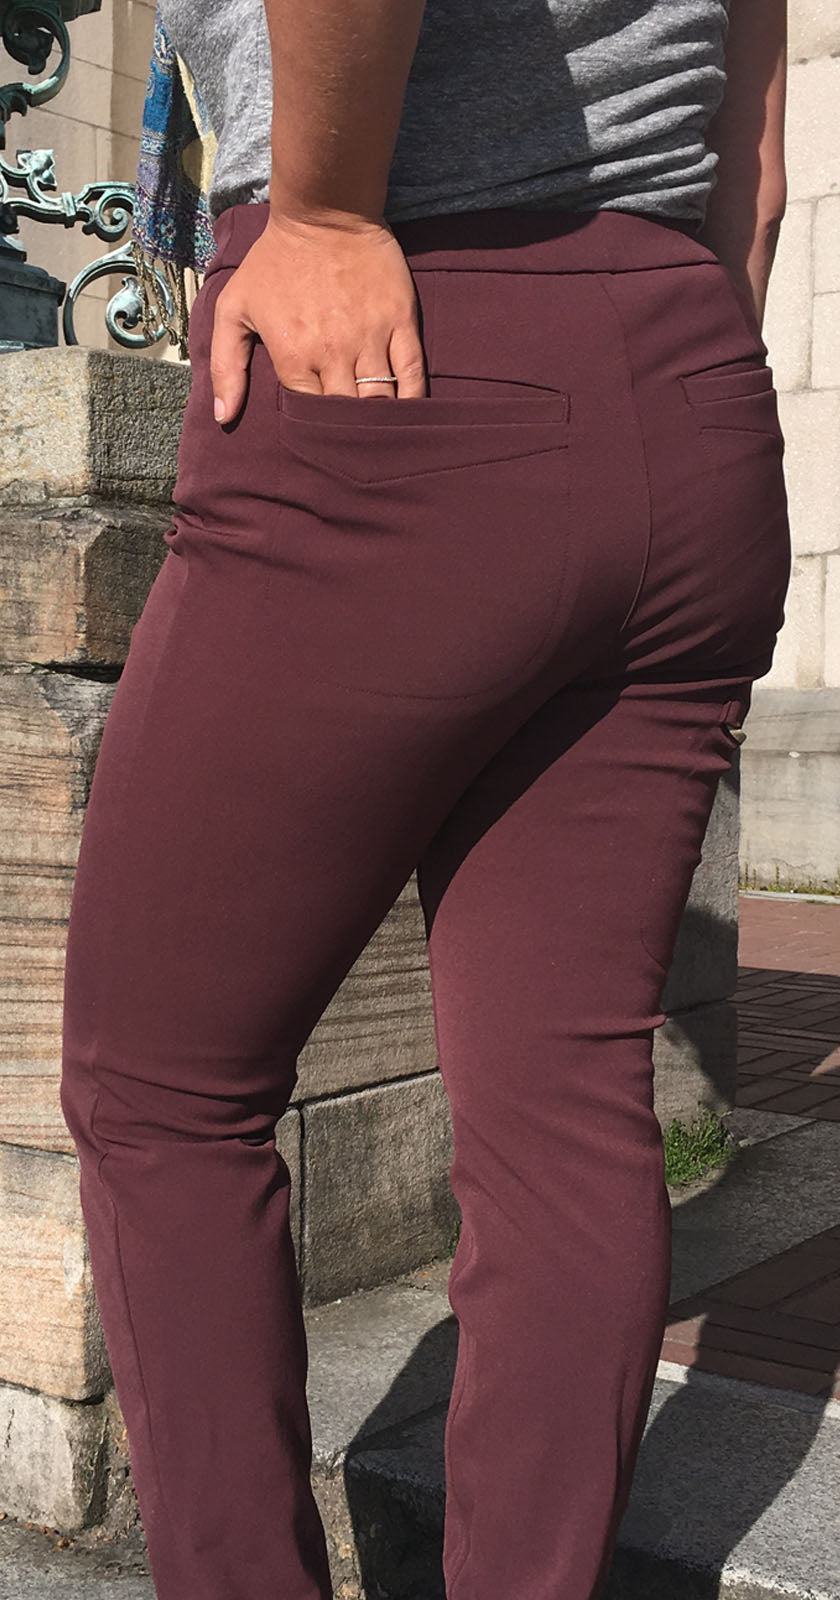 The 4 Pocket Un-Legging